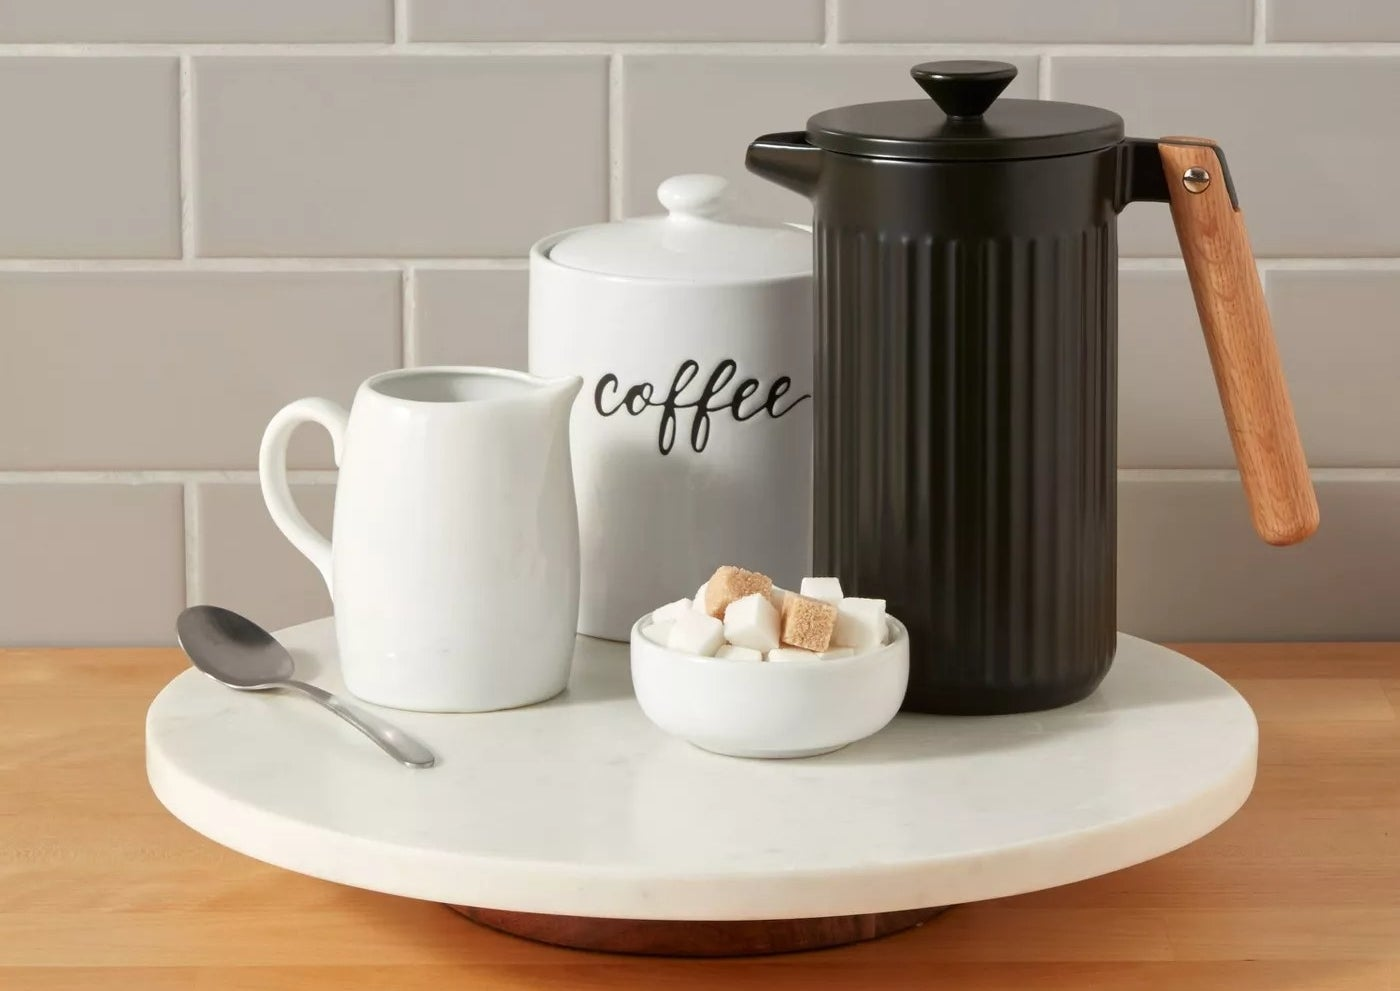 lazy susan with coffee mug and carafe on counter